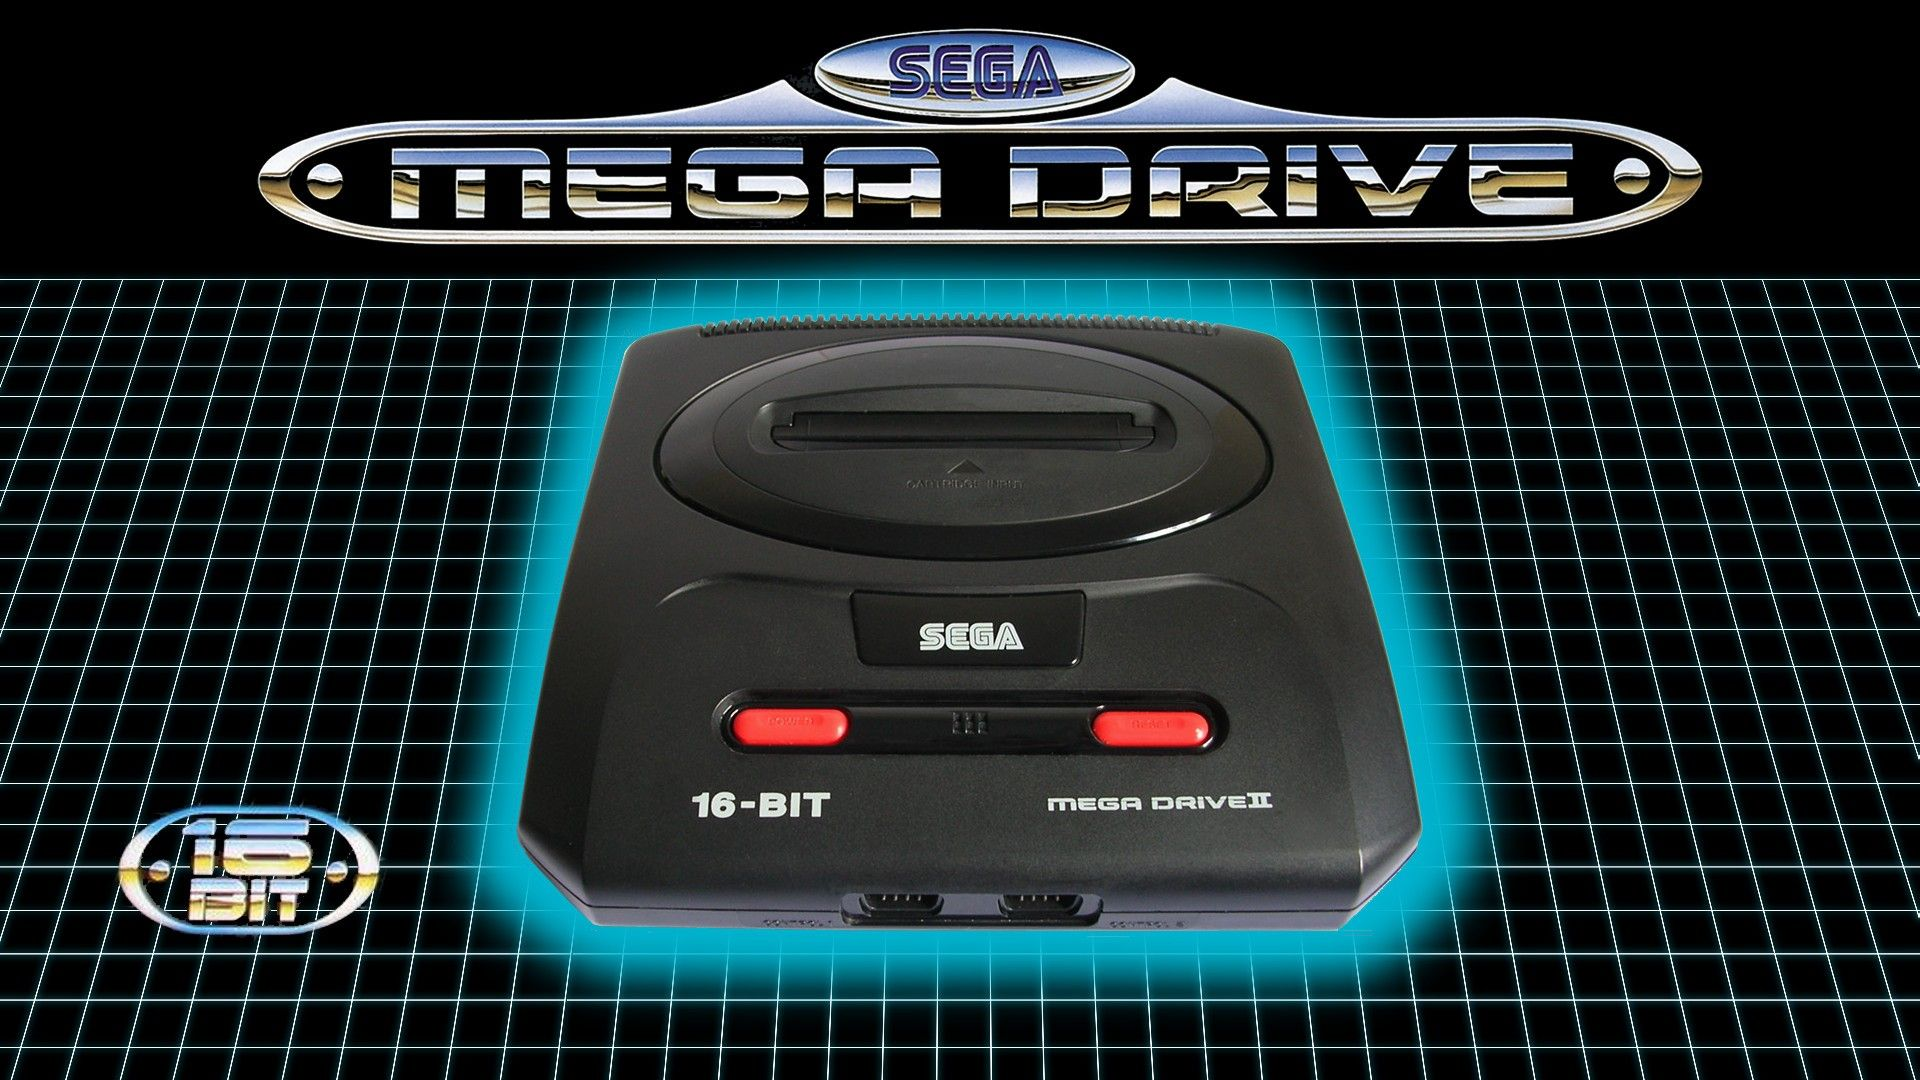 Pin By Maksim Zimovec On Gadgets Sega Sega Mega Drive Video Game Companies